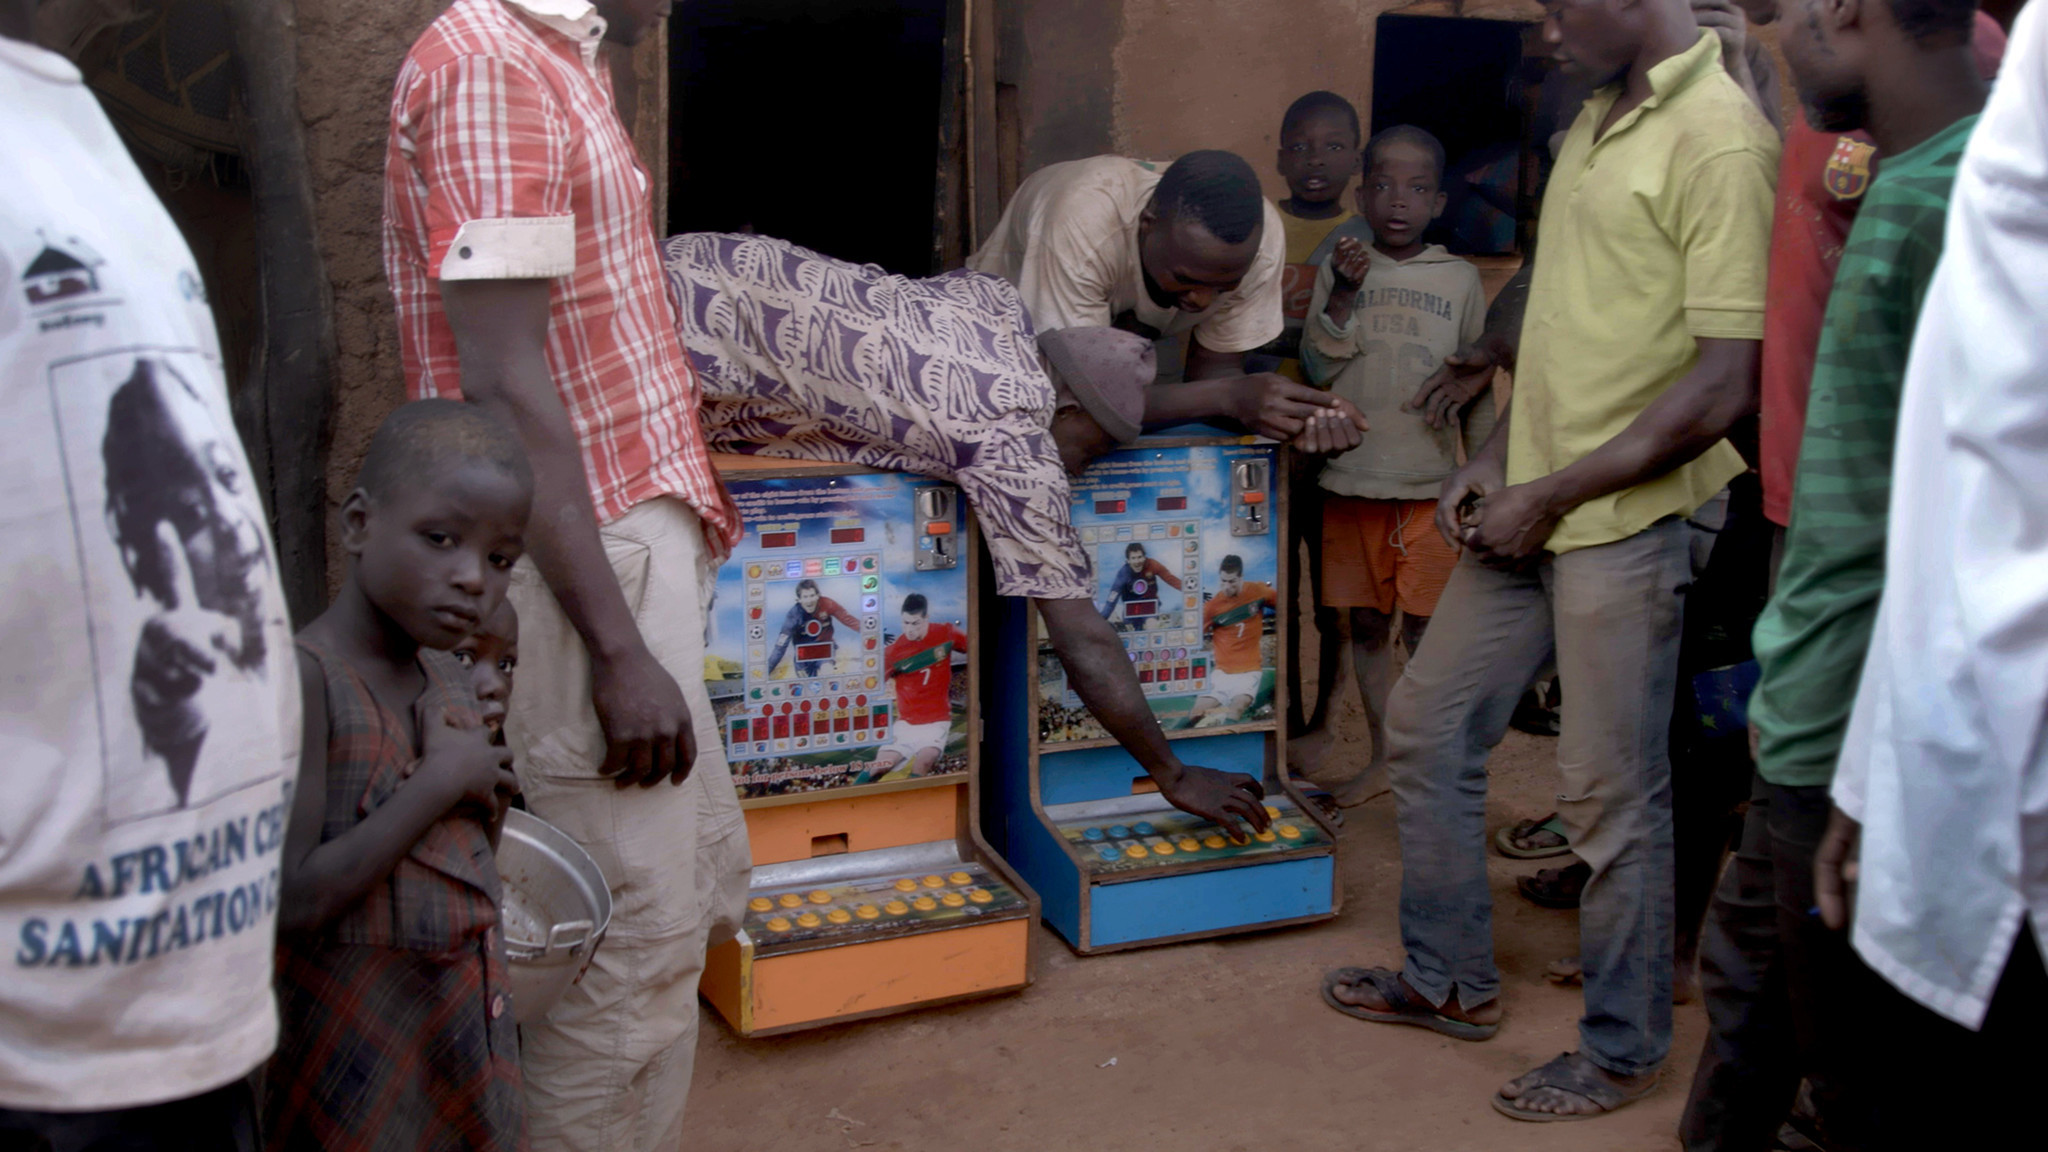 Villagers bring two gambling machines out from a hut in Zamashegu, in Ghana's Northern Region.